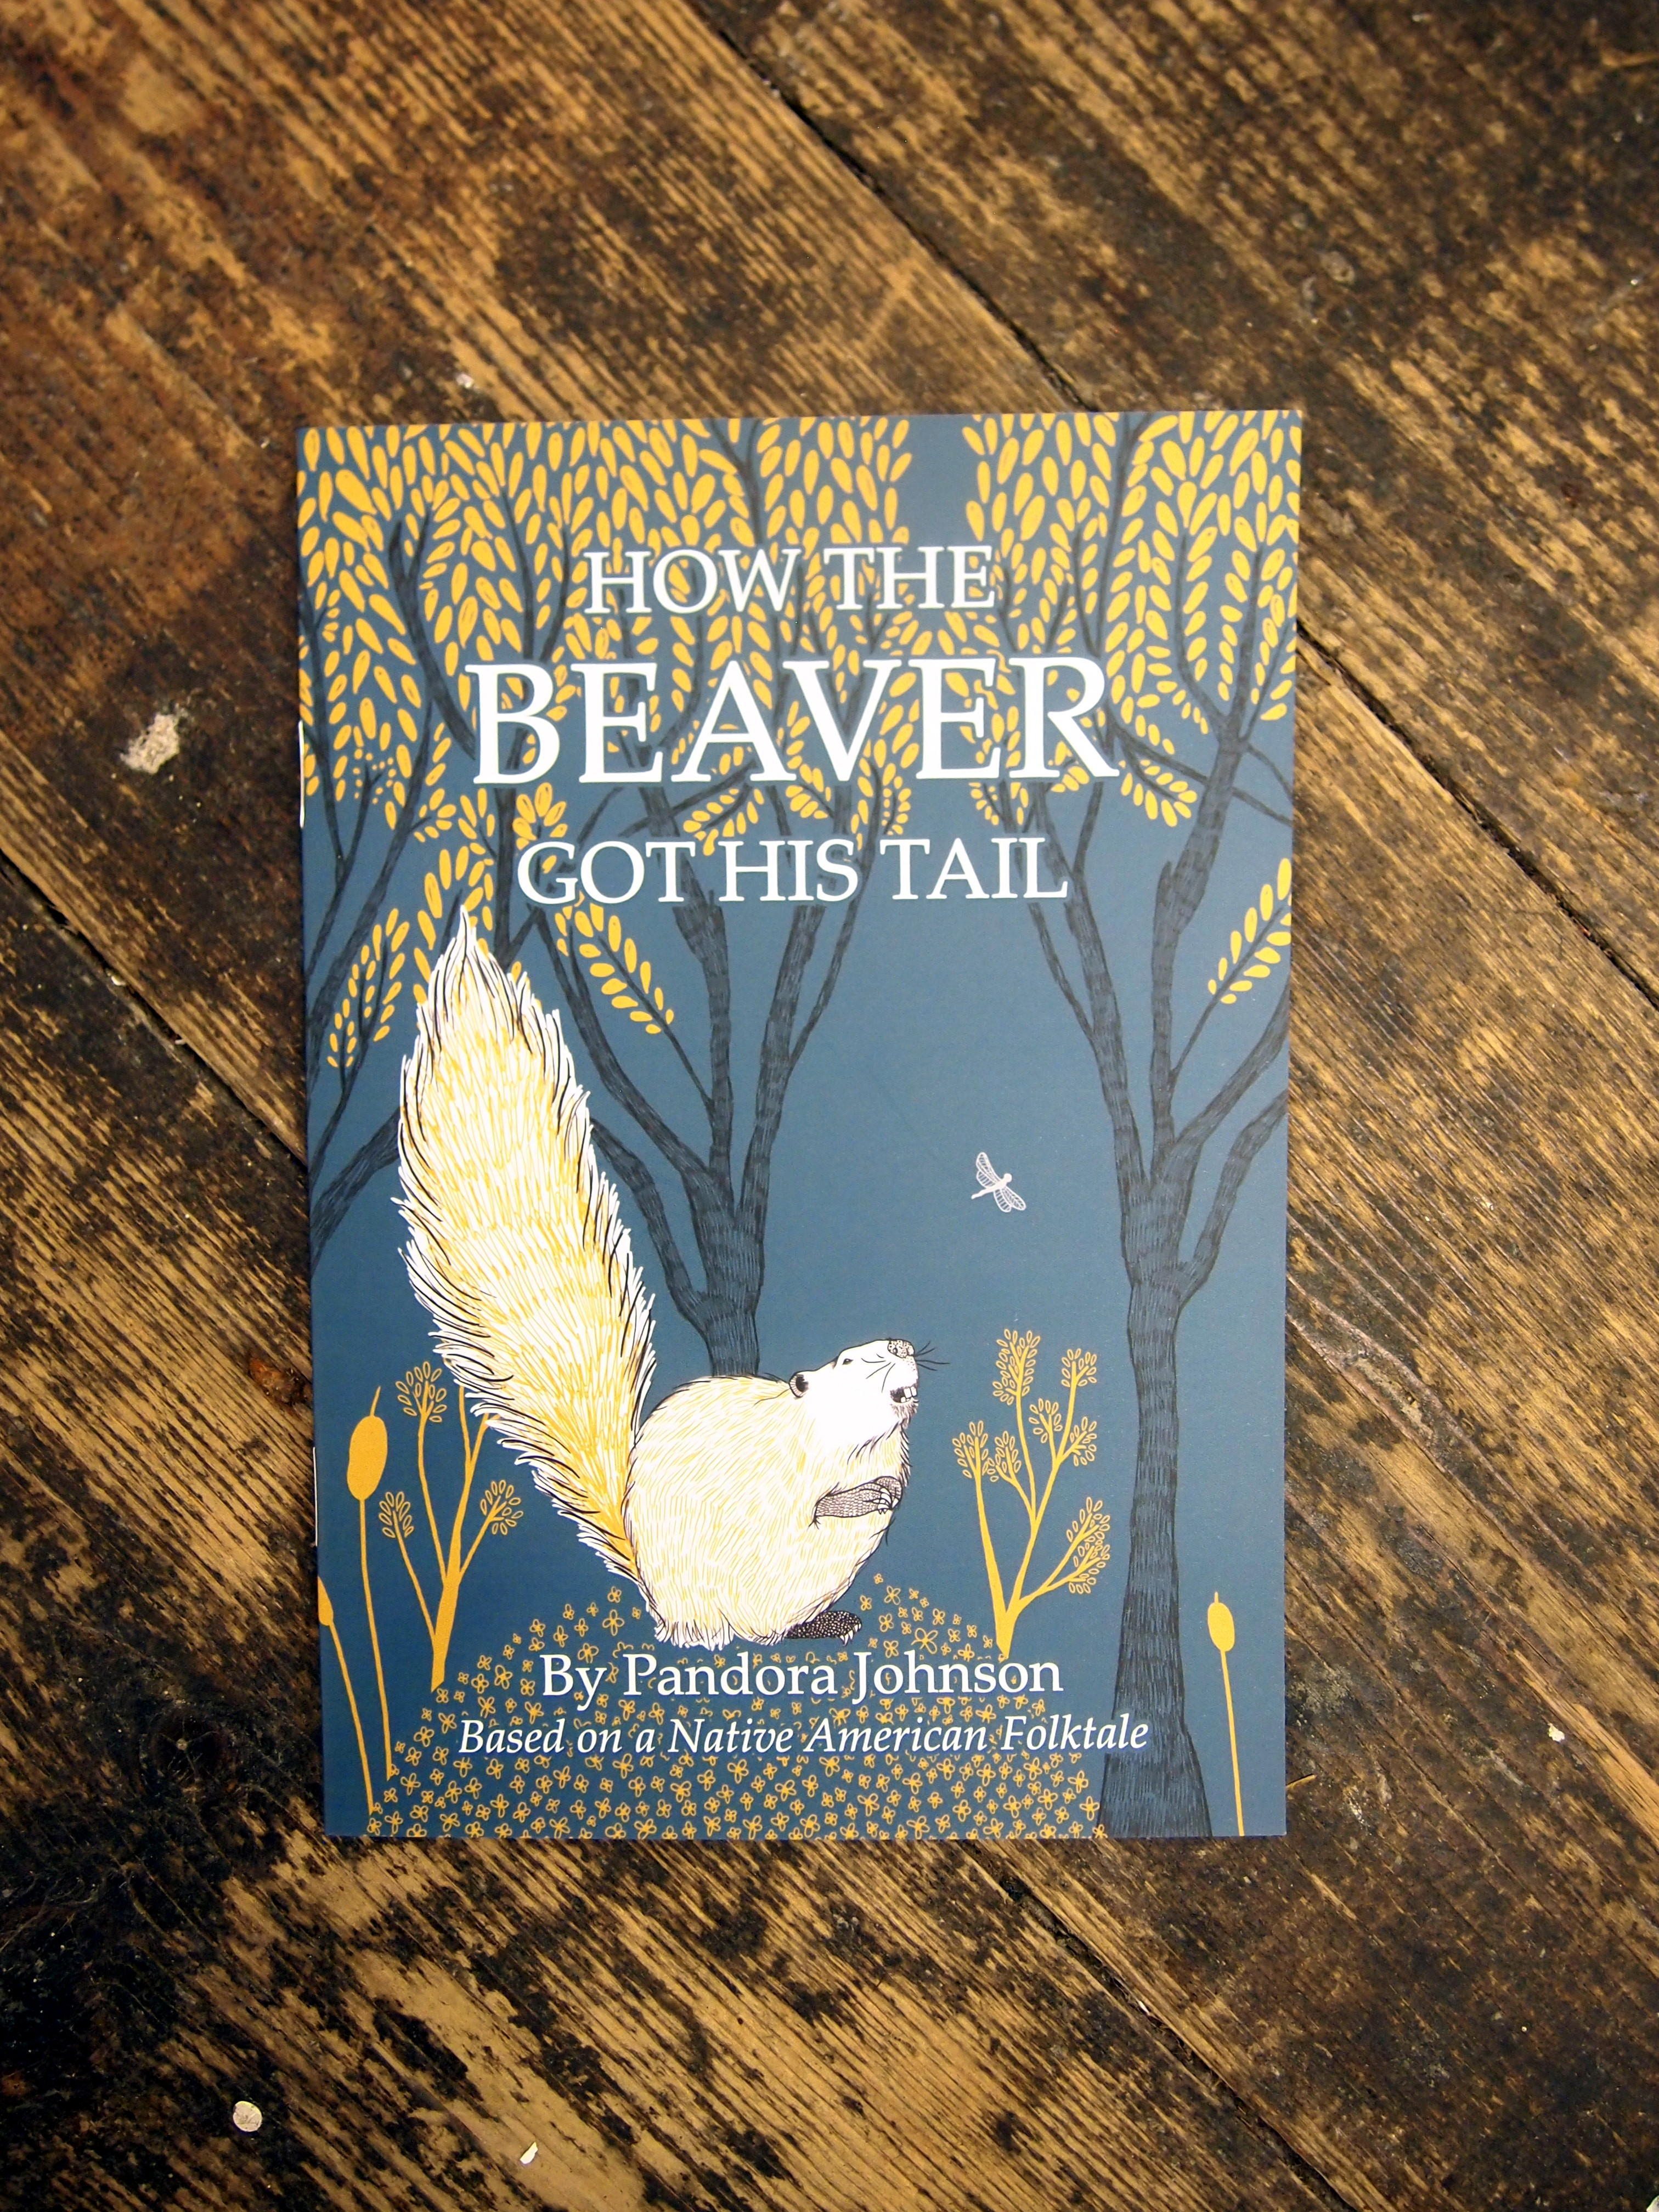 How The Beaver Gor His Tale, an illustrated tale